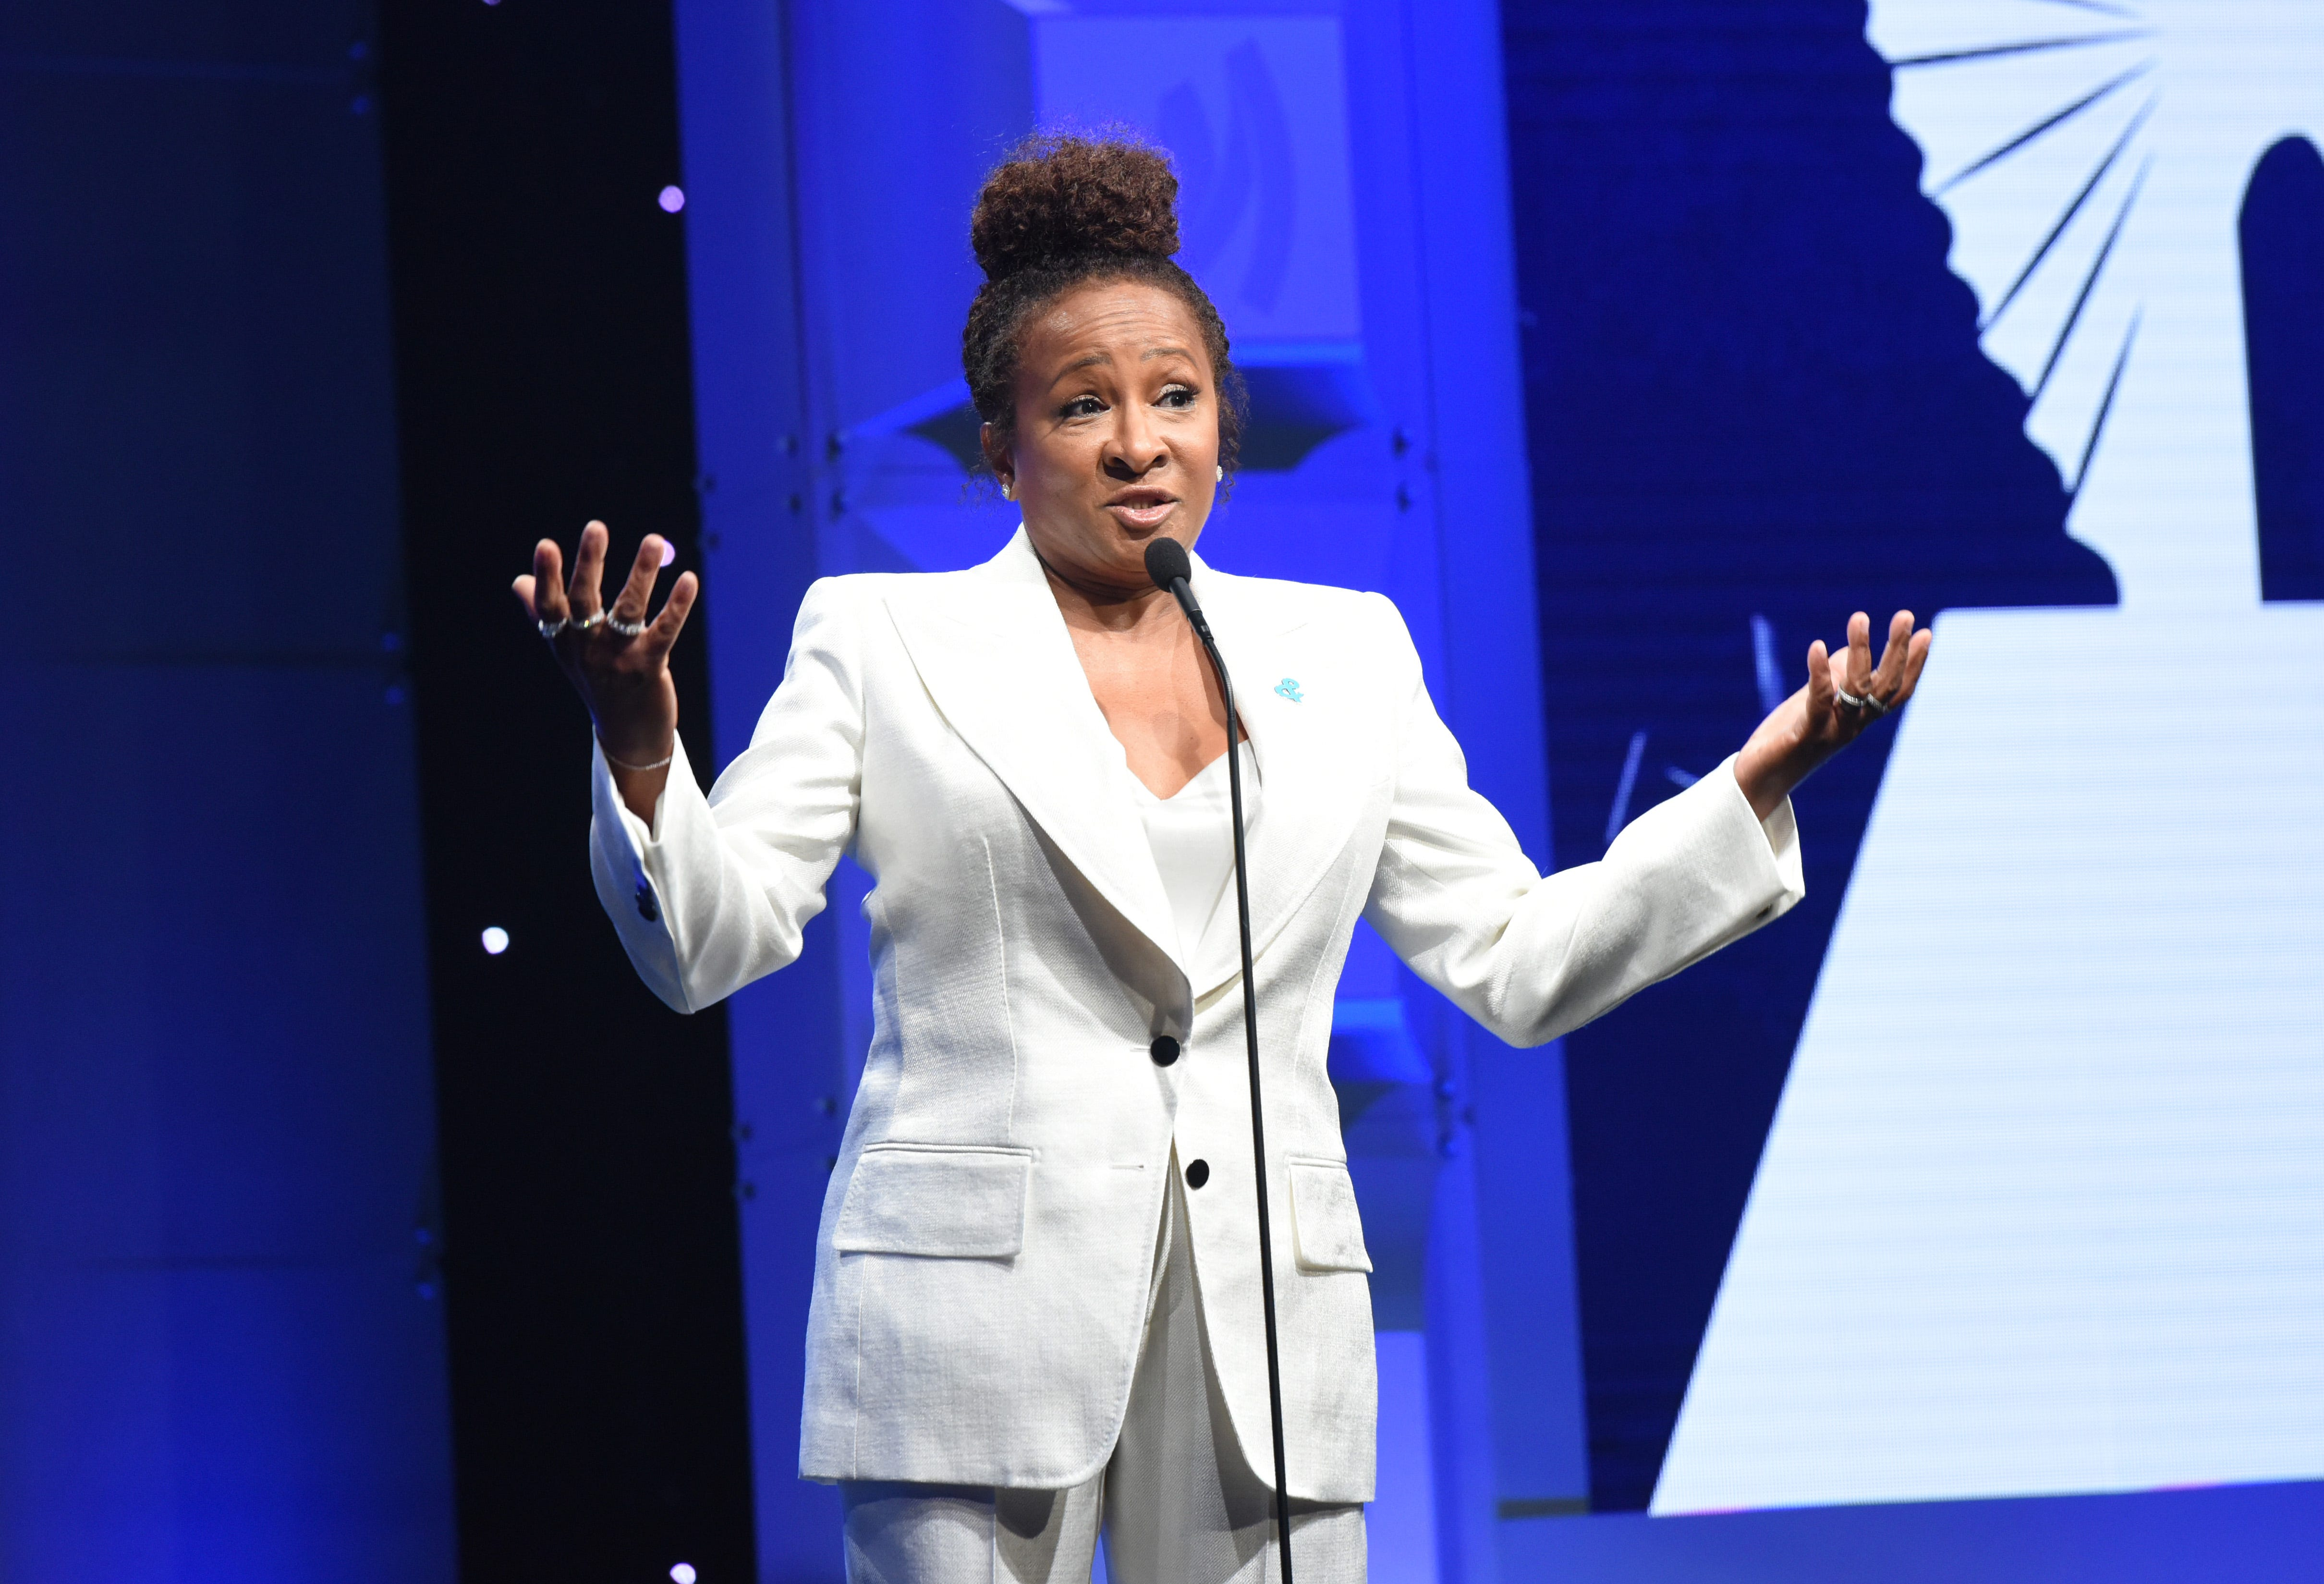 Wanda Sykes explains why she snubbed Michelle Obama: 'I still kick myself about it'